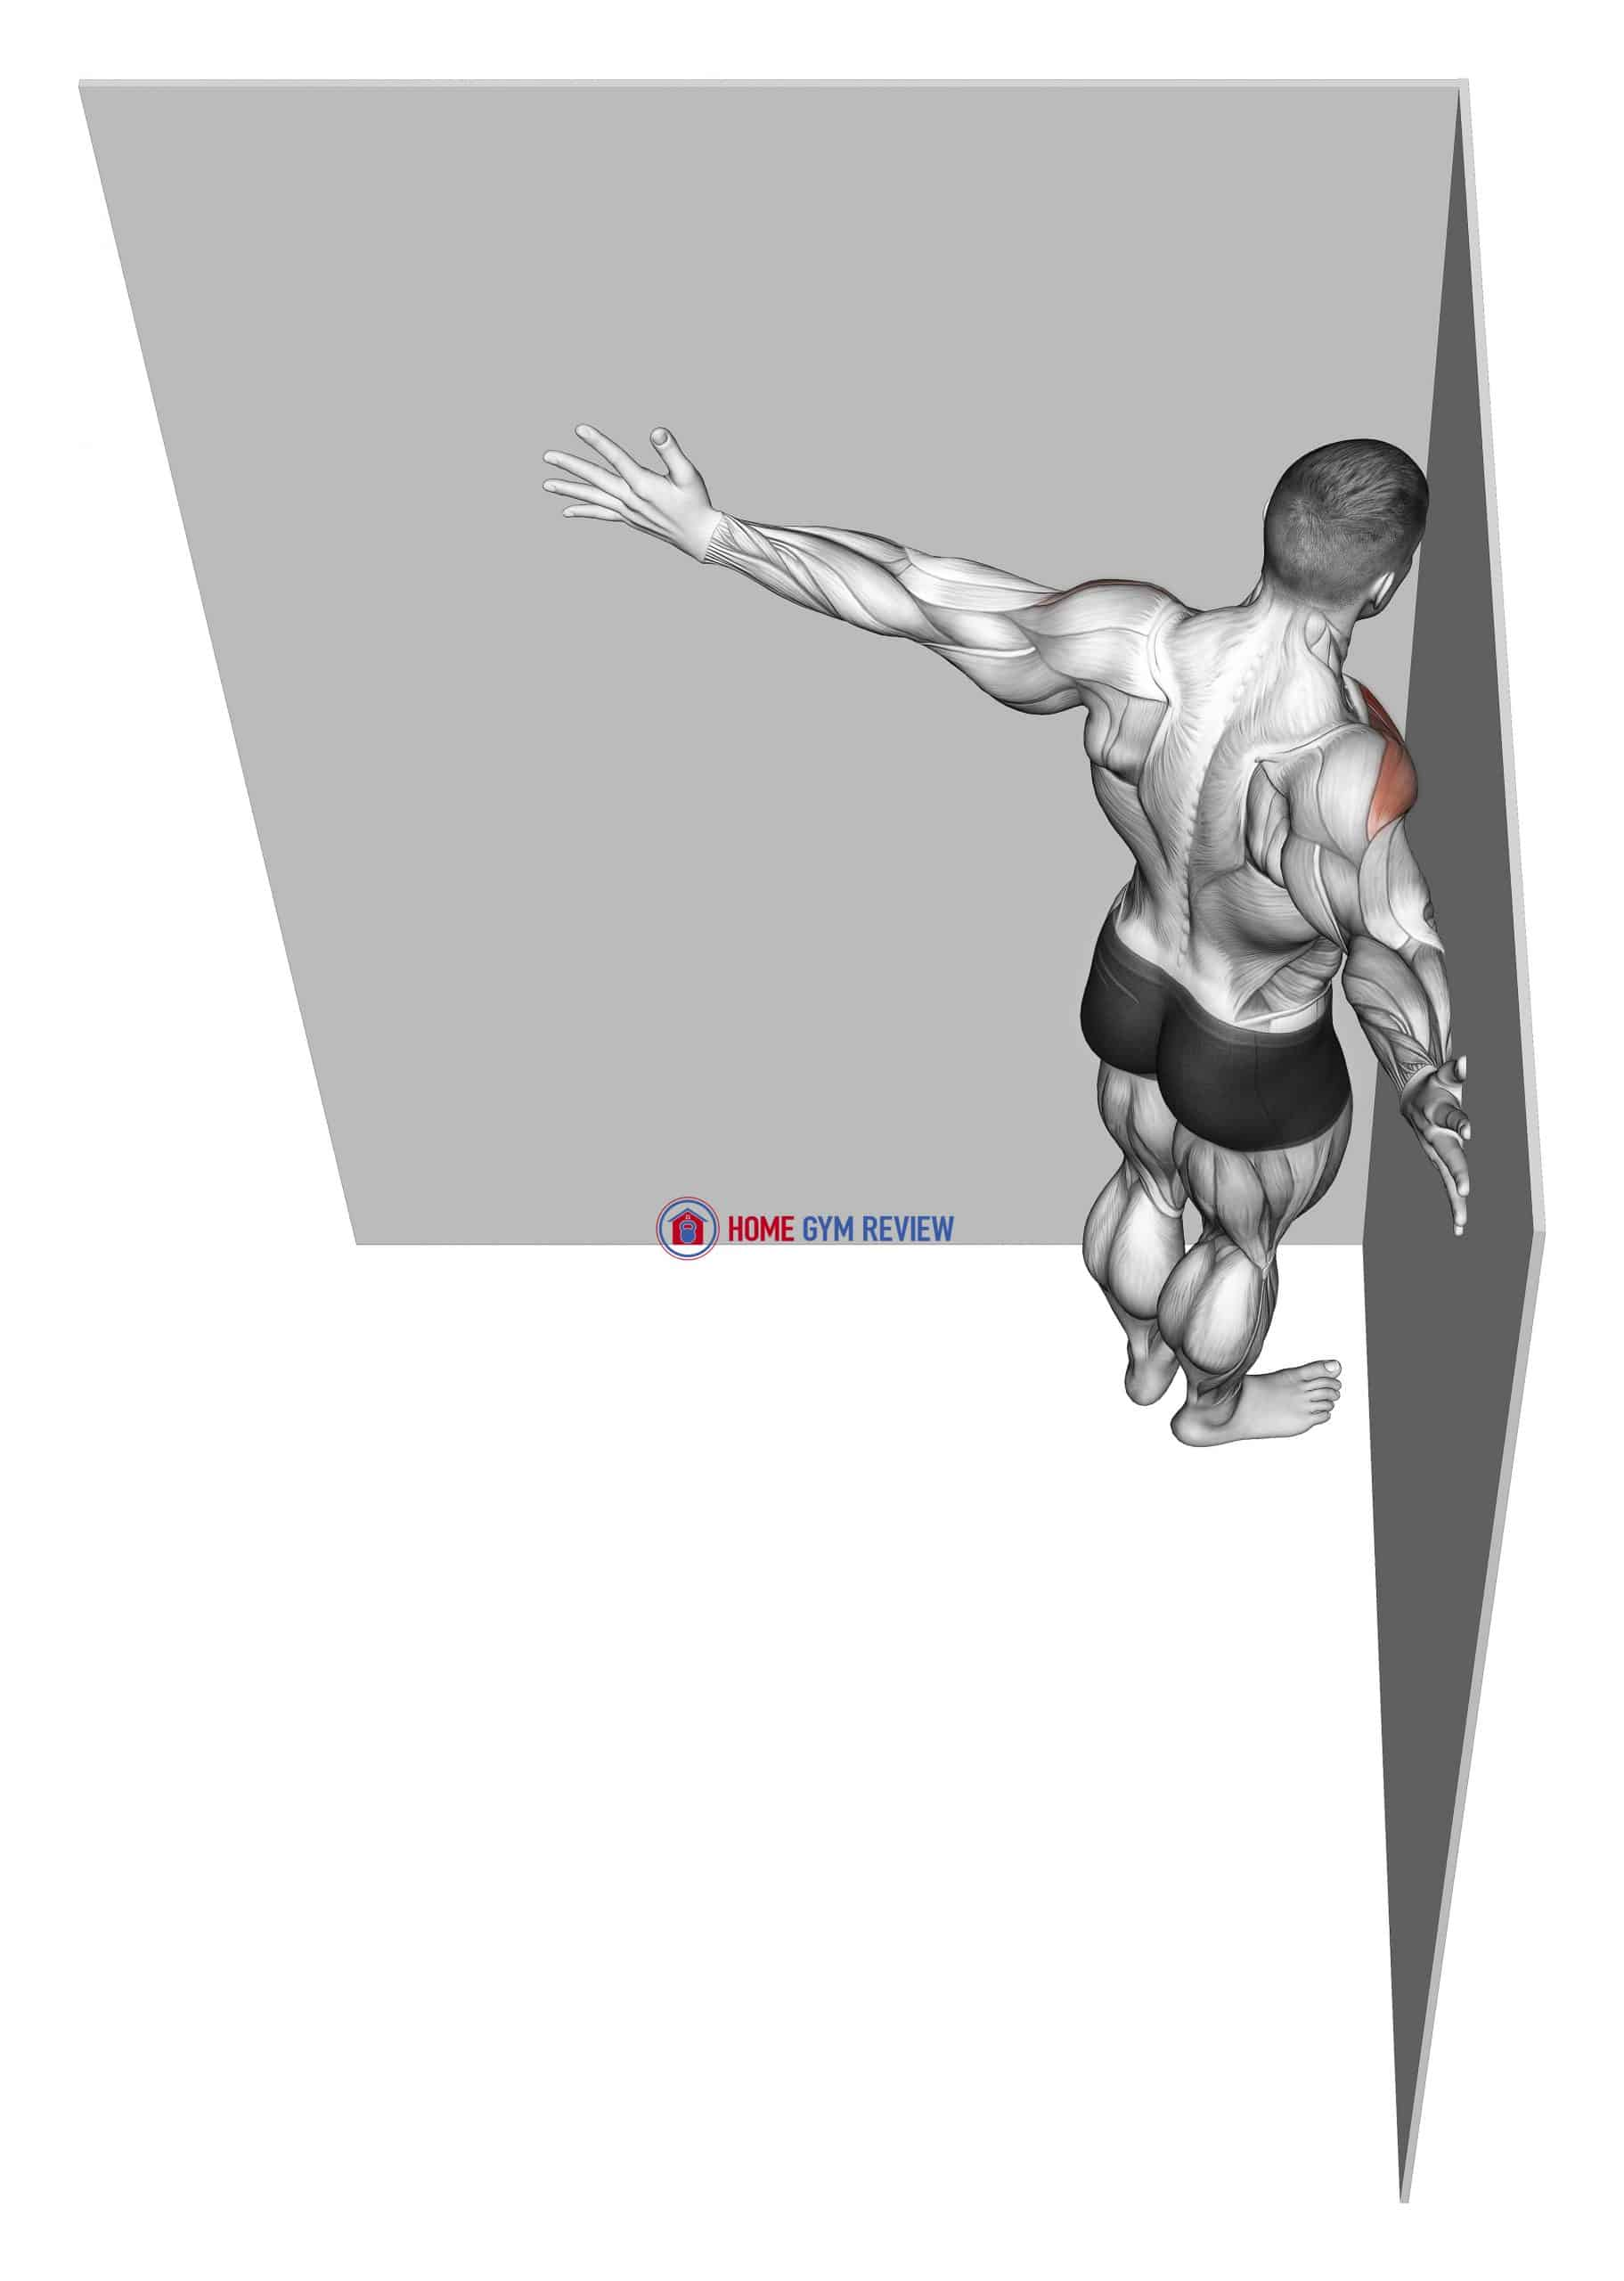 Conner Wall Chest Stretch